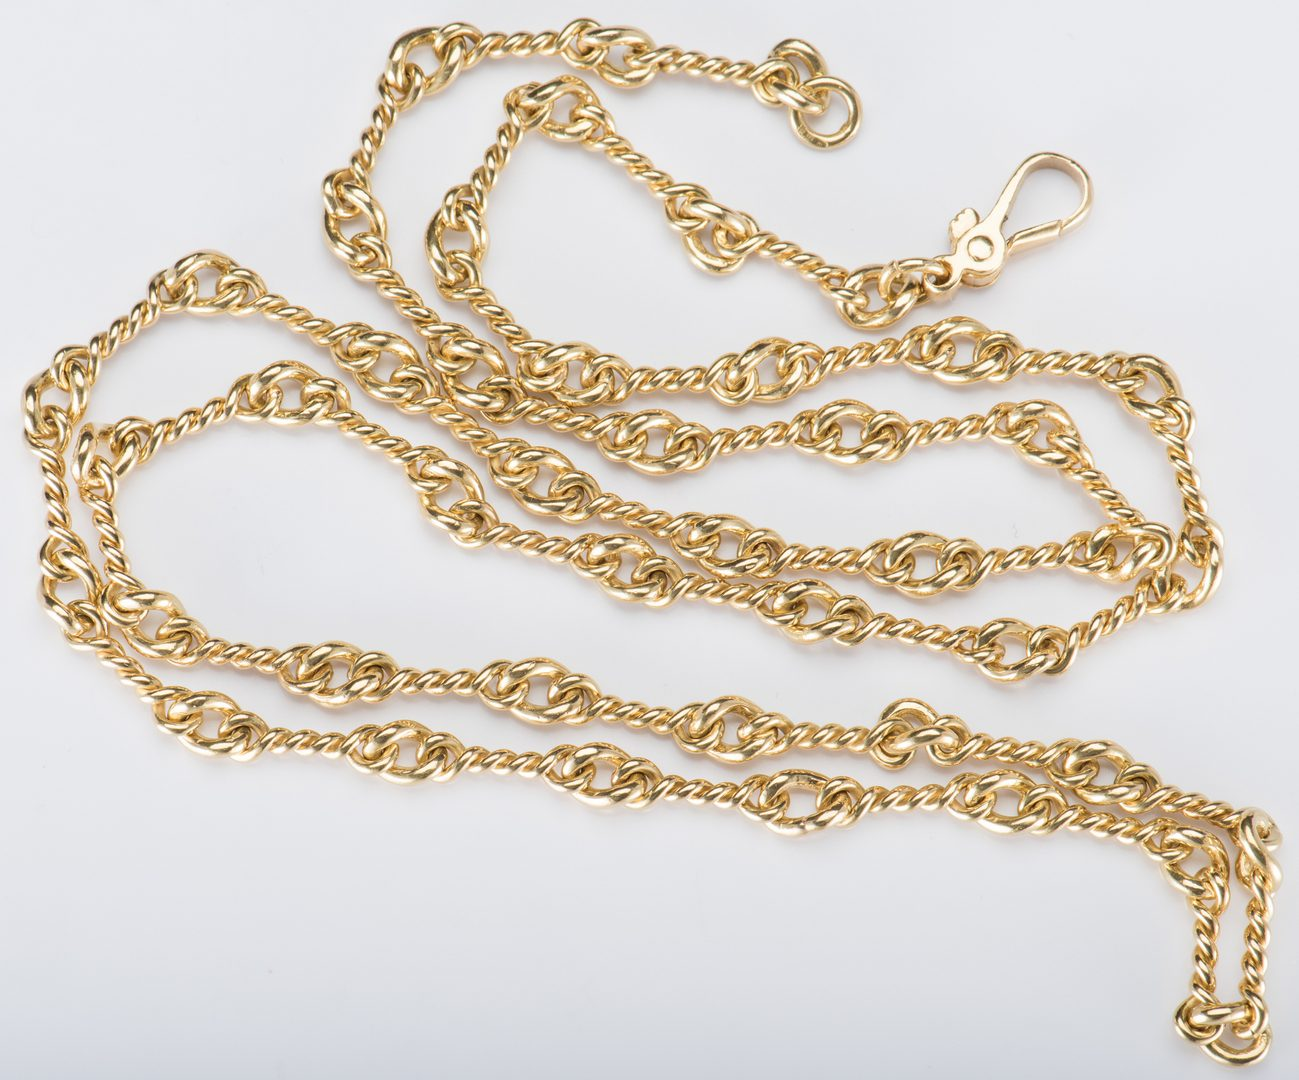 Lot 53: 18K Necklace or Watch Chain